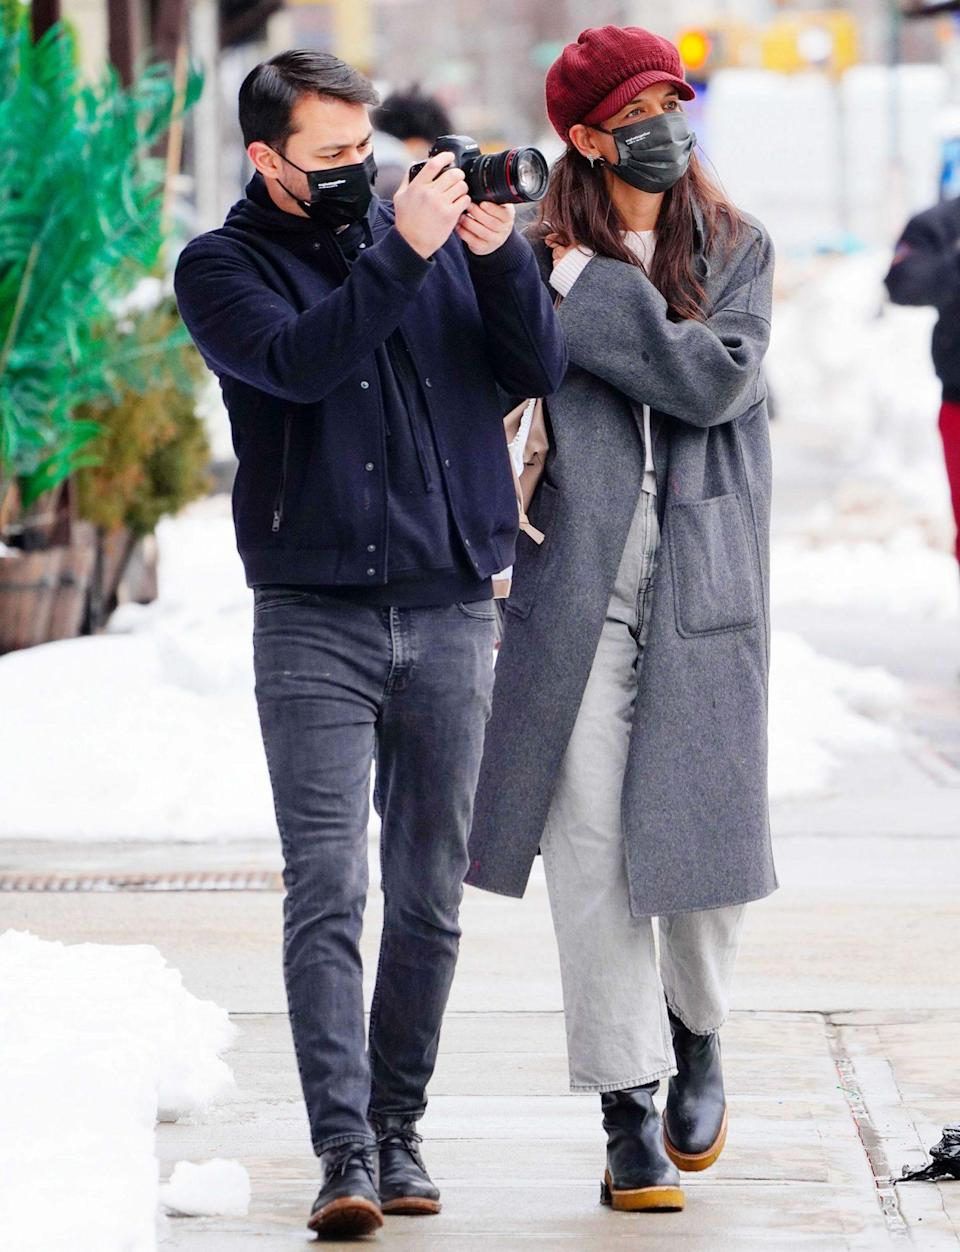 <p>Katie Holmes and boyfriend Emilio Vitolo Jr. go for a walk in snowy N.Y.C. and snap photos along the way on Wednesday. </p>